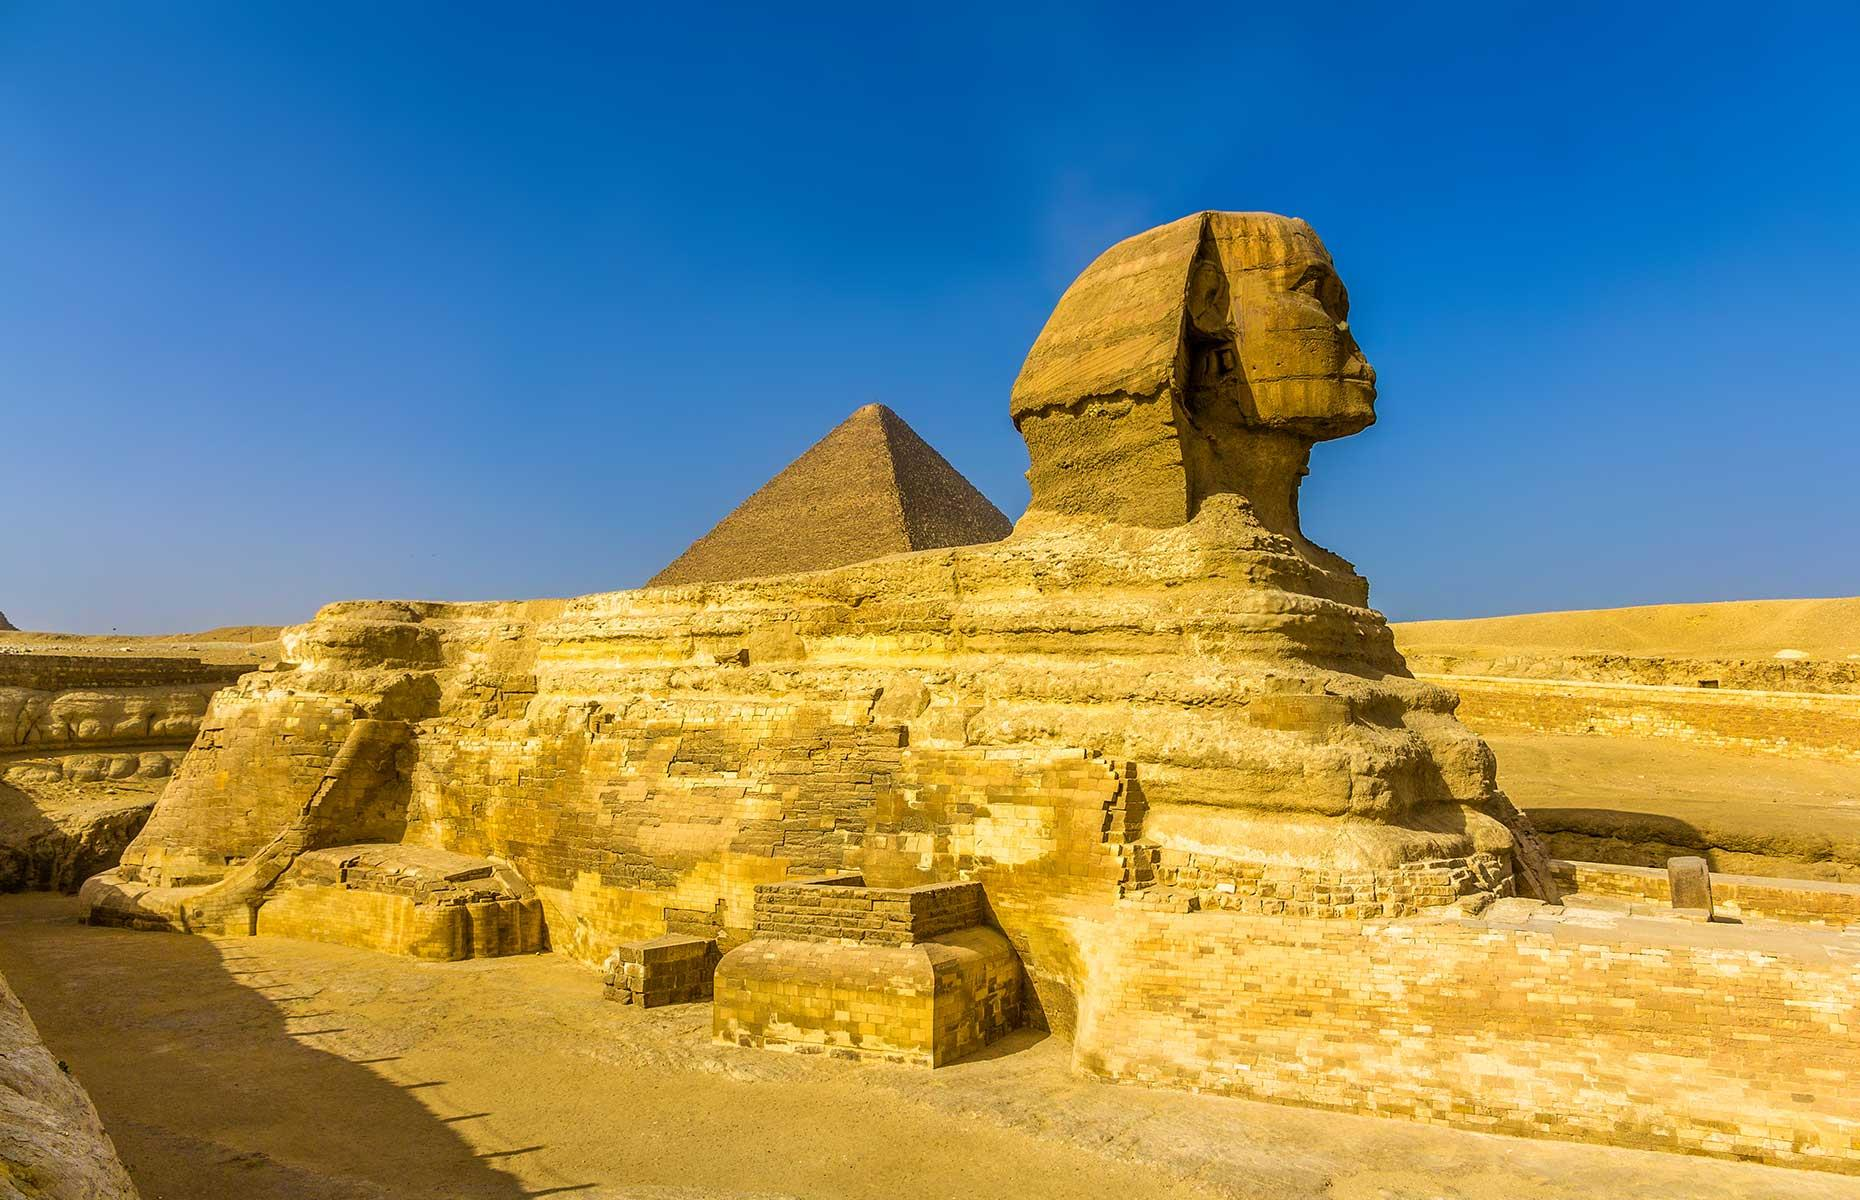 Slide 4 of 14: The Great Sphinx was also built for Khaefre. Carved from a rock outcrop, the landmark is generally accepted to be a representation of the king with a lion's body. It measures 240 feet (73m) from paw to tail, rises 65 feet (20m) high and is about 62 feet (19m) wide across the haunches. The lower part of the sphinx is composed of softer limestone than the head – this led to a greater degree of erosion, which was repaired first in antiquity.